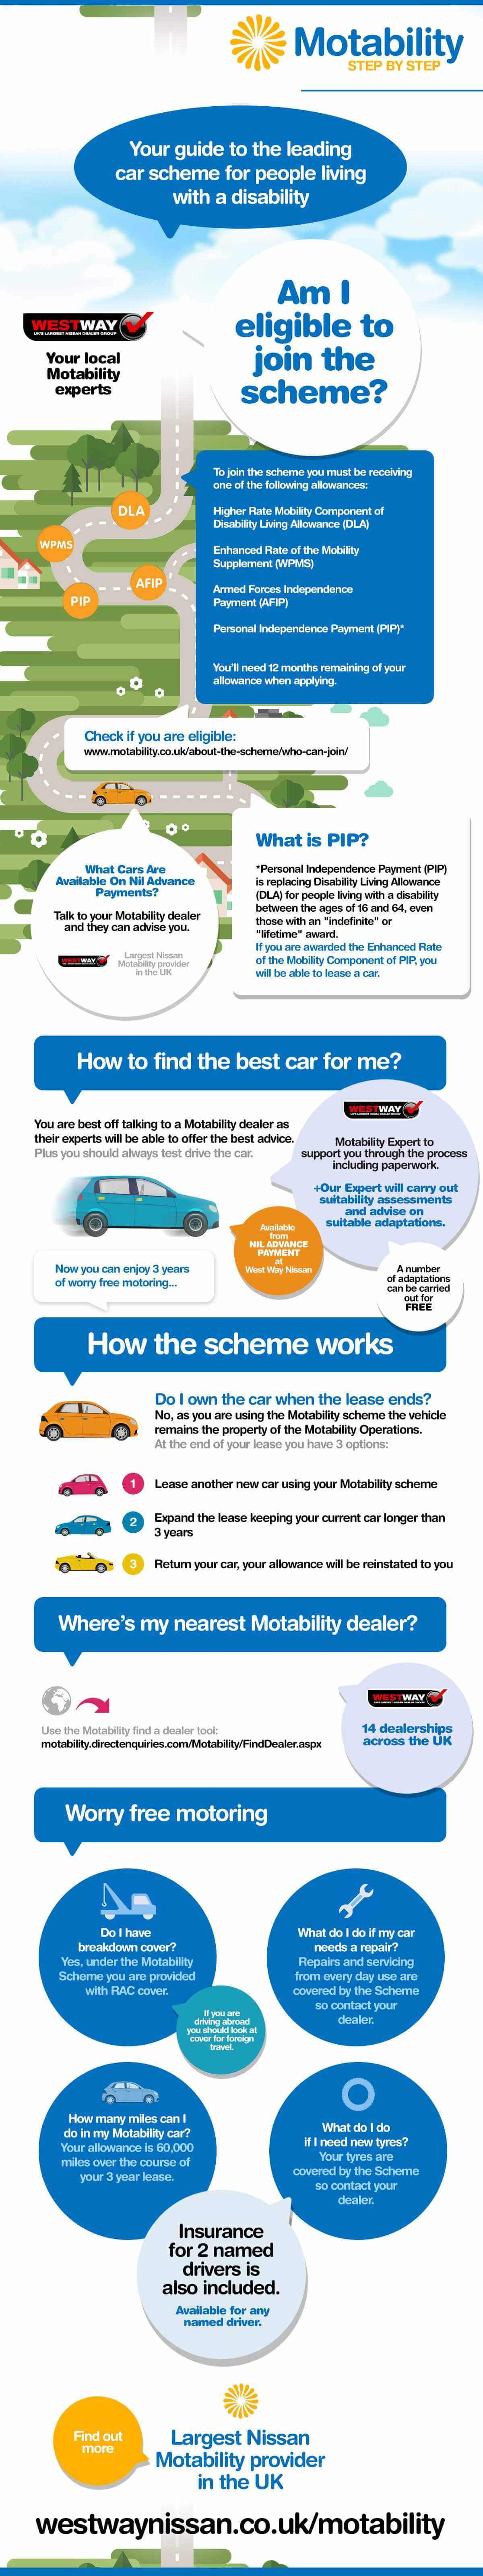 Guide To The Motability Scheme Infographic